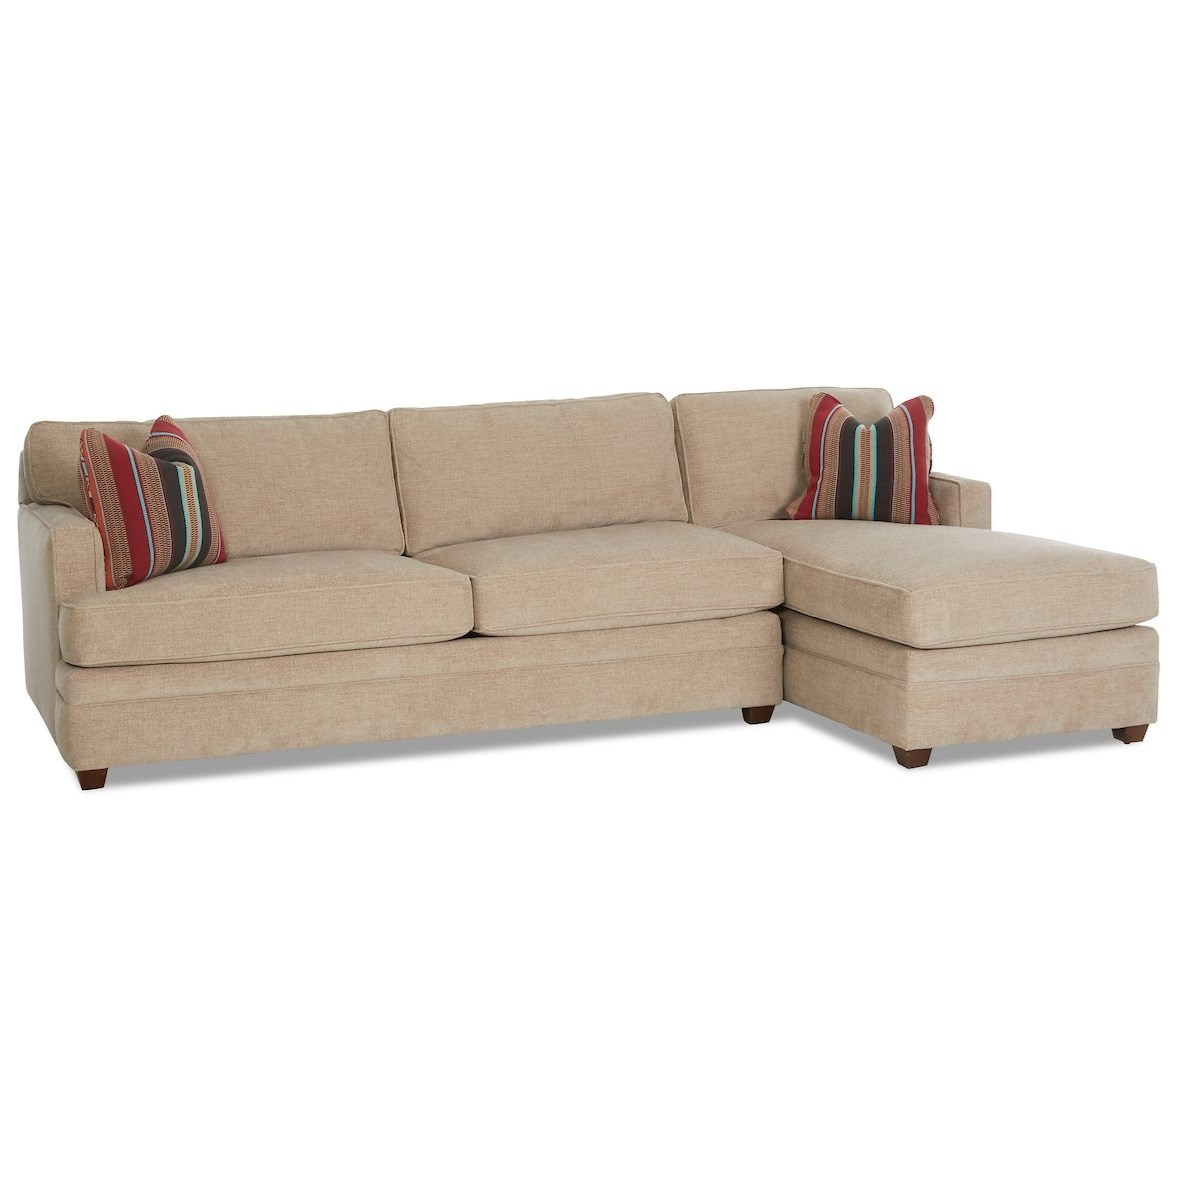 2-Piece Sectional Sofa with LAF Innerspring Sleeper